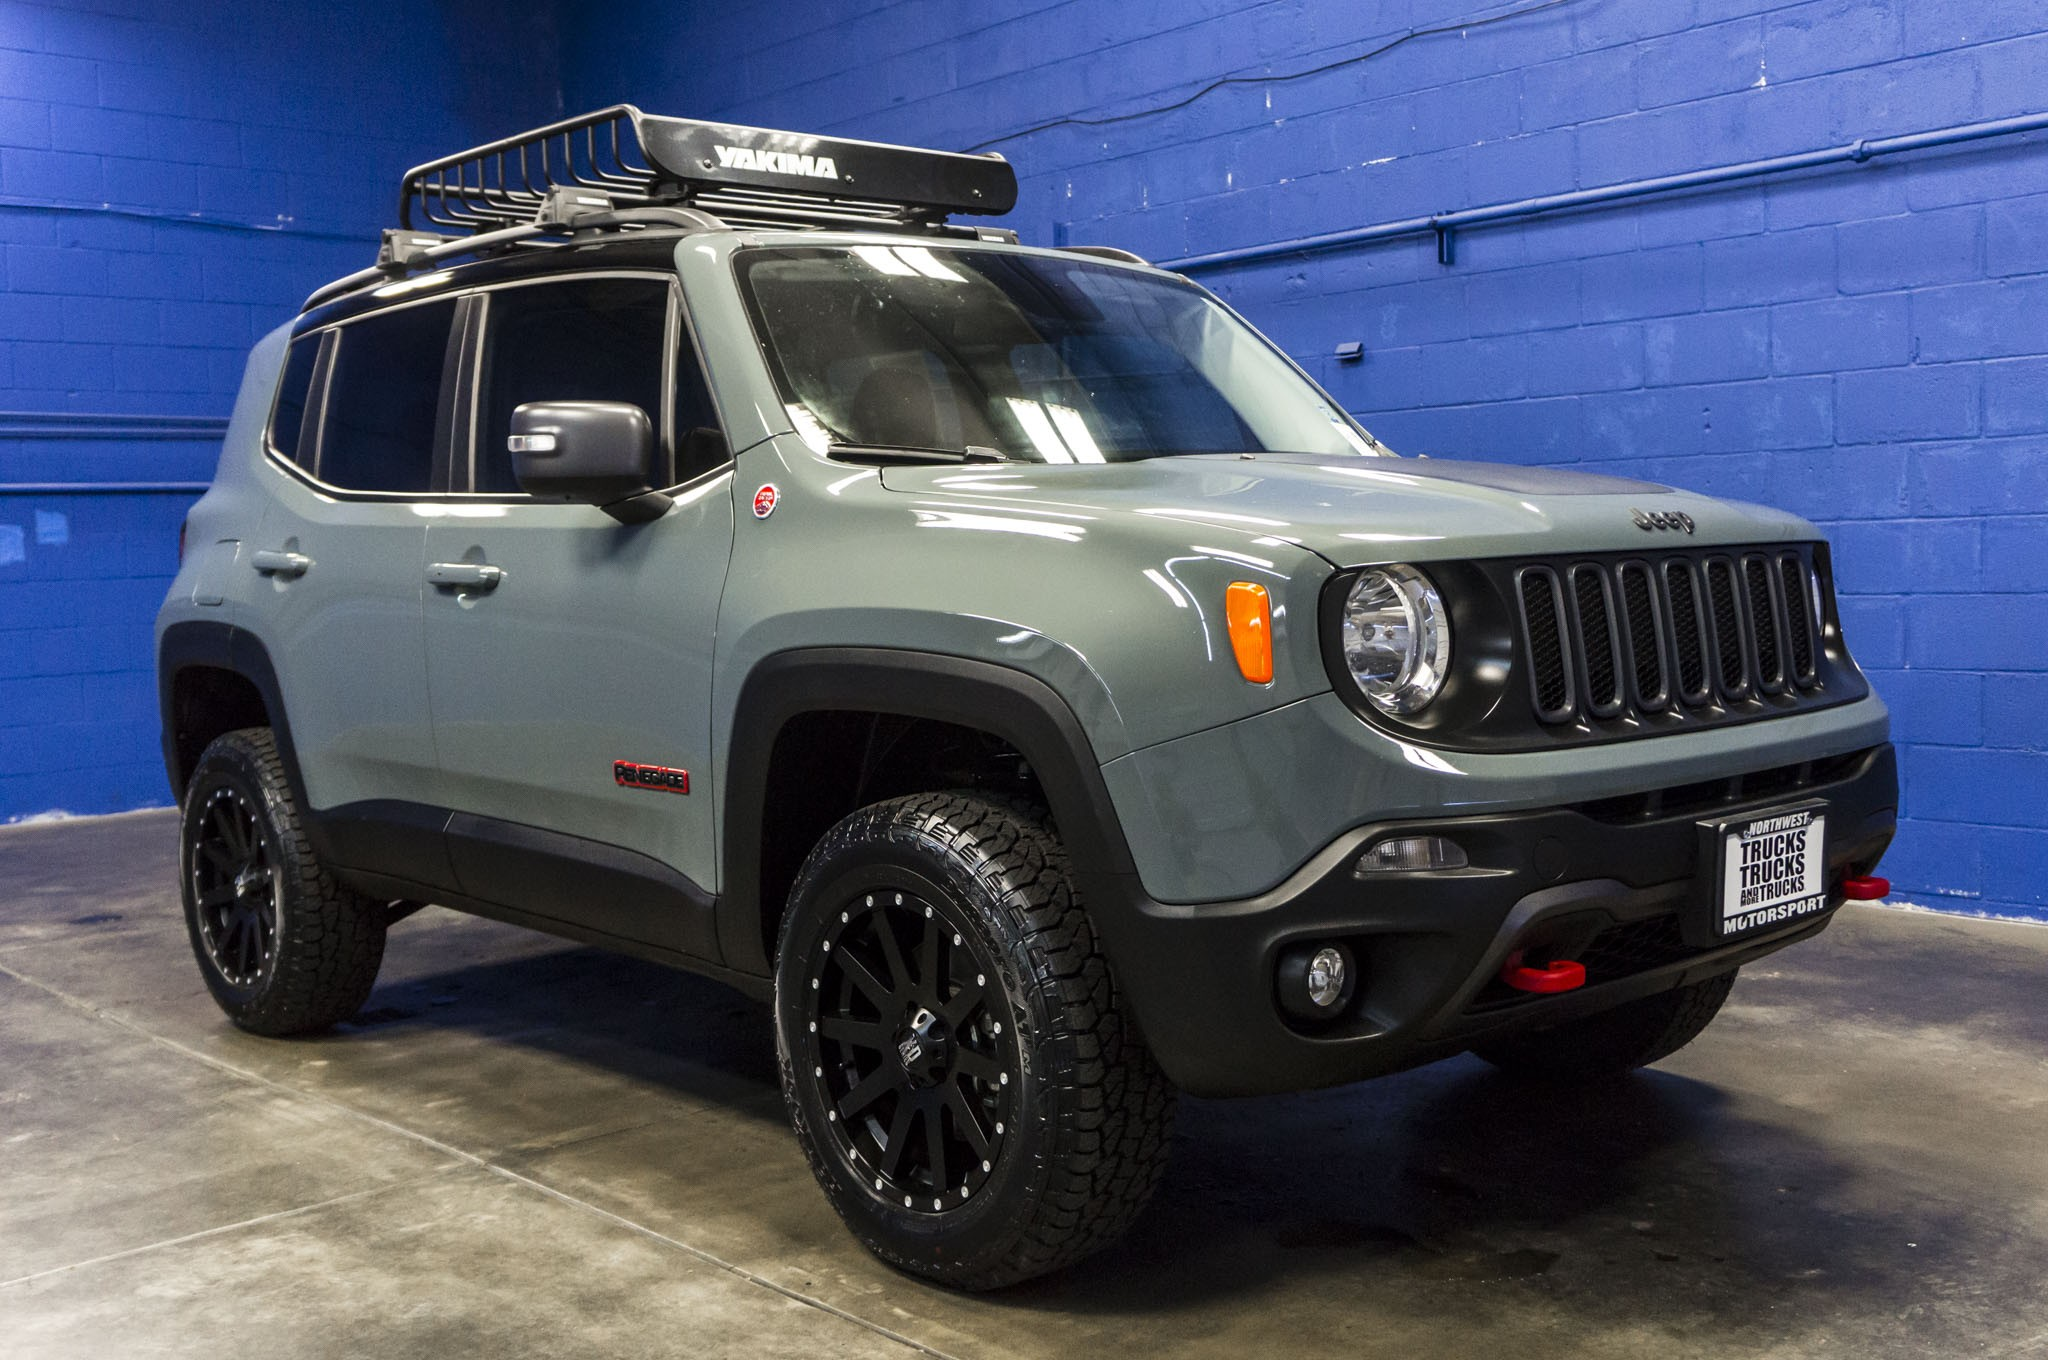 Lifted Renegade Trailhawk >> Used Lifted 2016 Jeep Renegade Trailhawk 4x4 Suv For Sale 34271